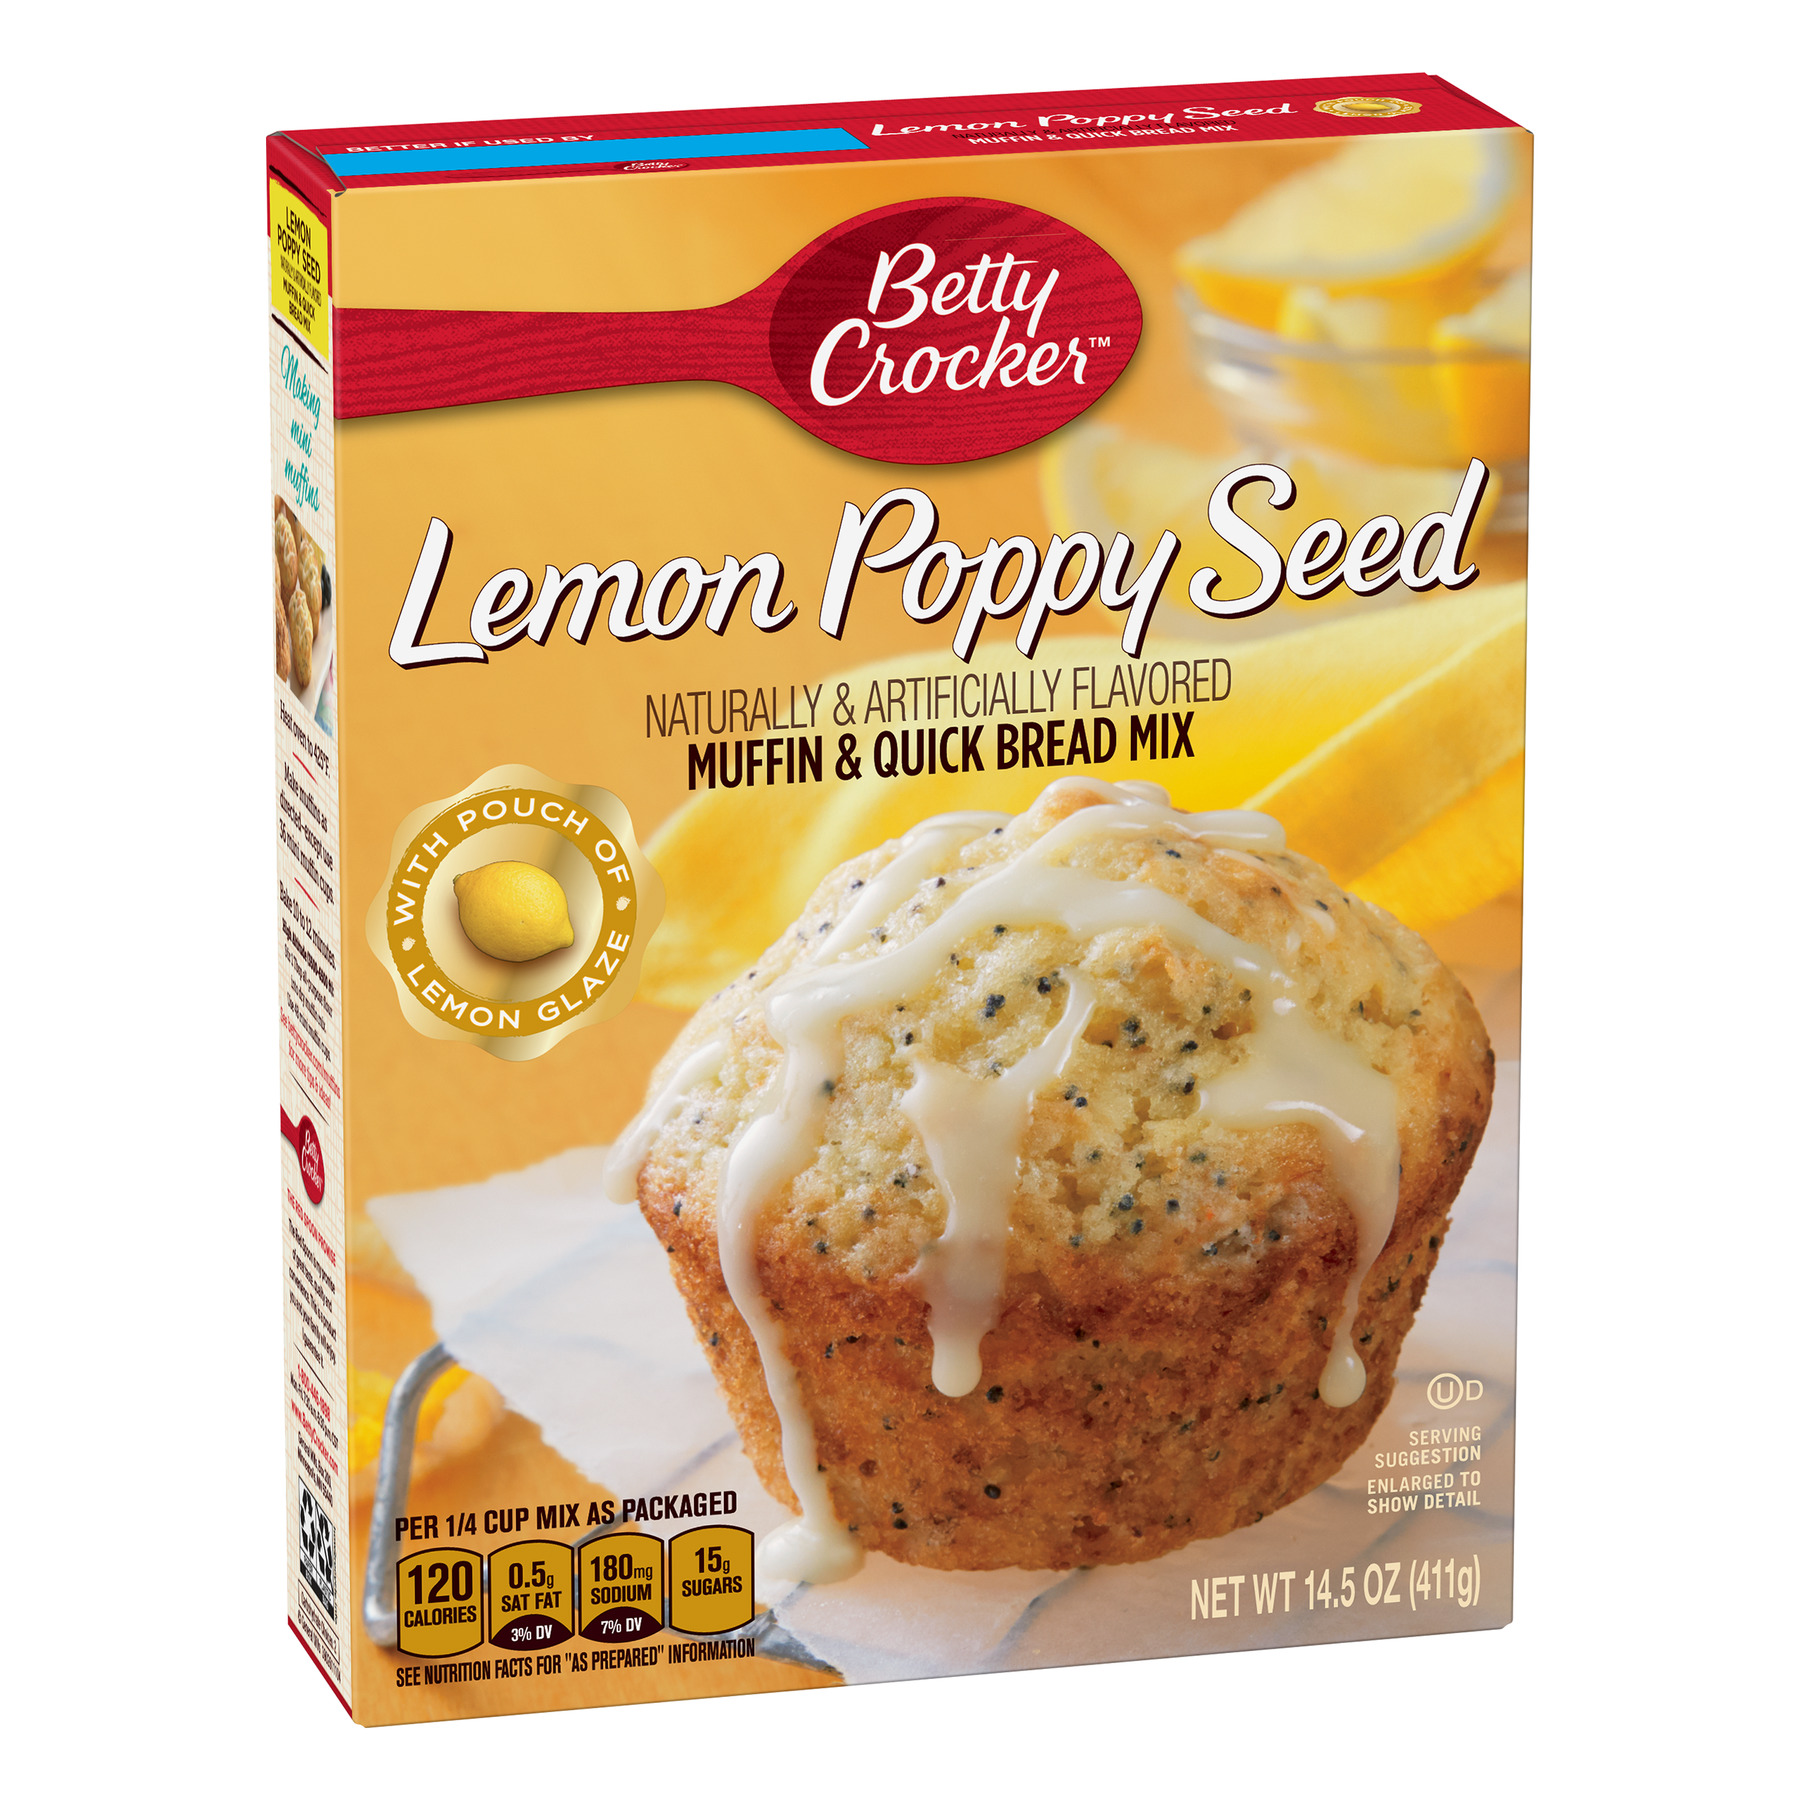 betty crocker lemon poppy seed muffin and quick bread mix 14 5 oz